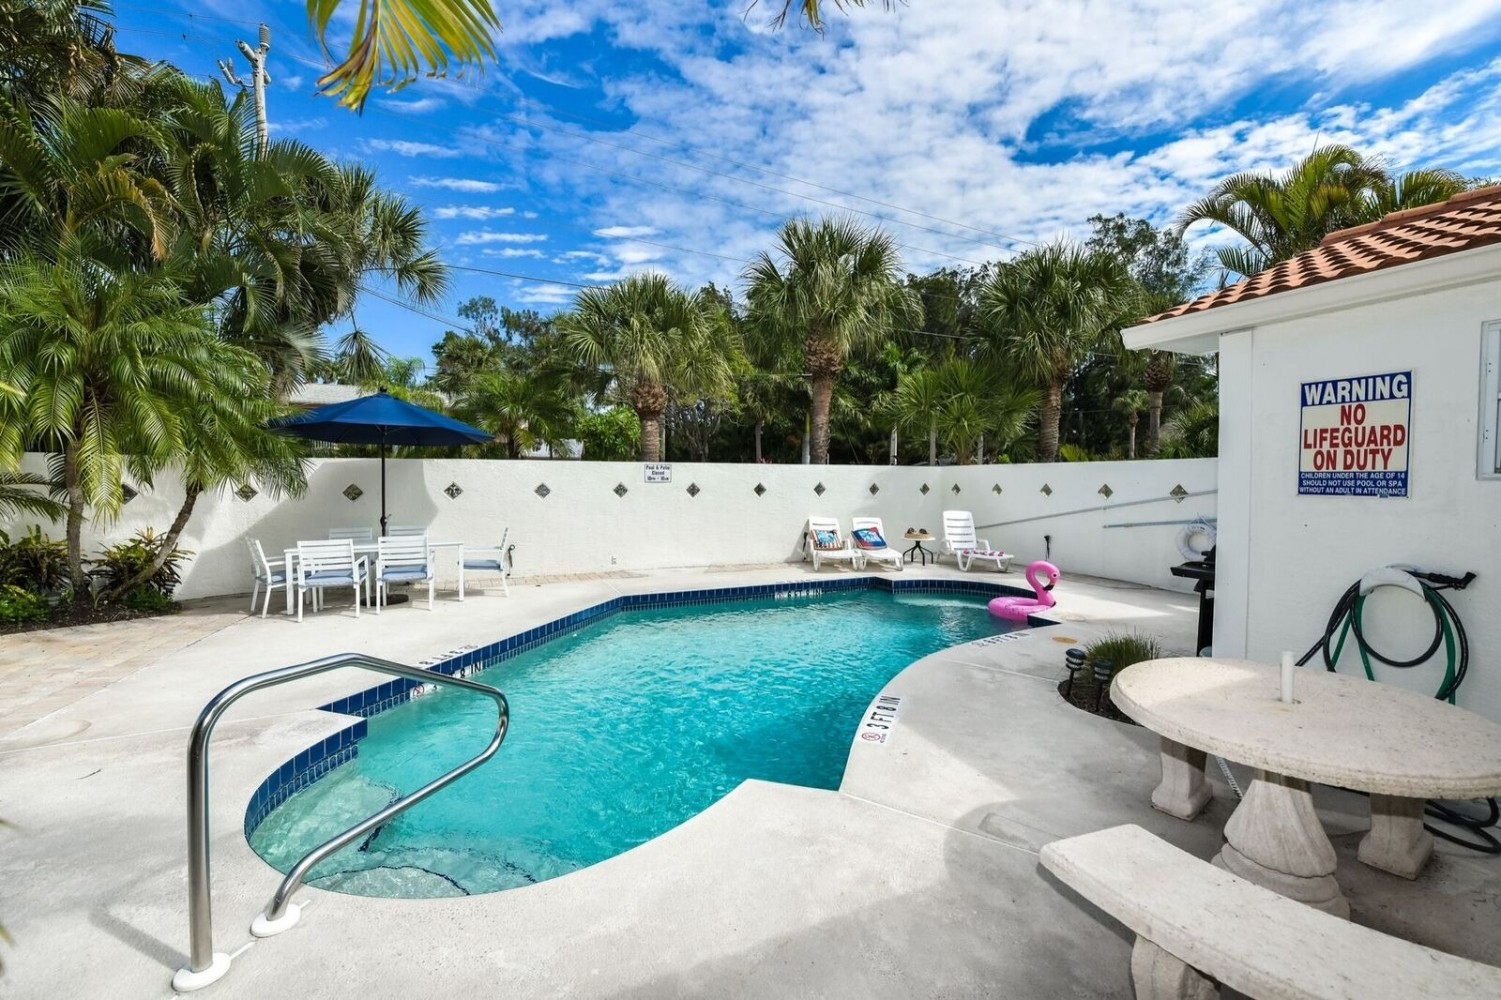 2 Bedroom, 2 Bath-Poolside - Siesta Key Vacation Rentals